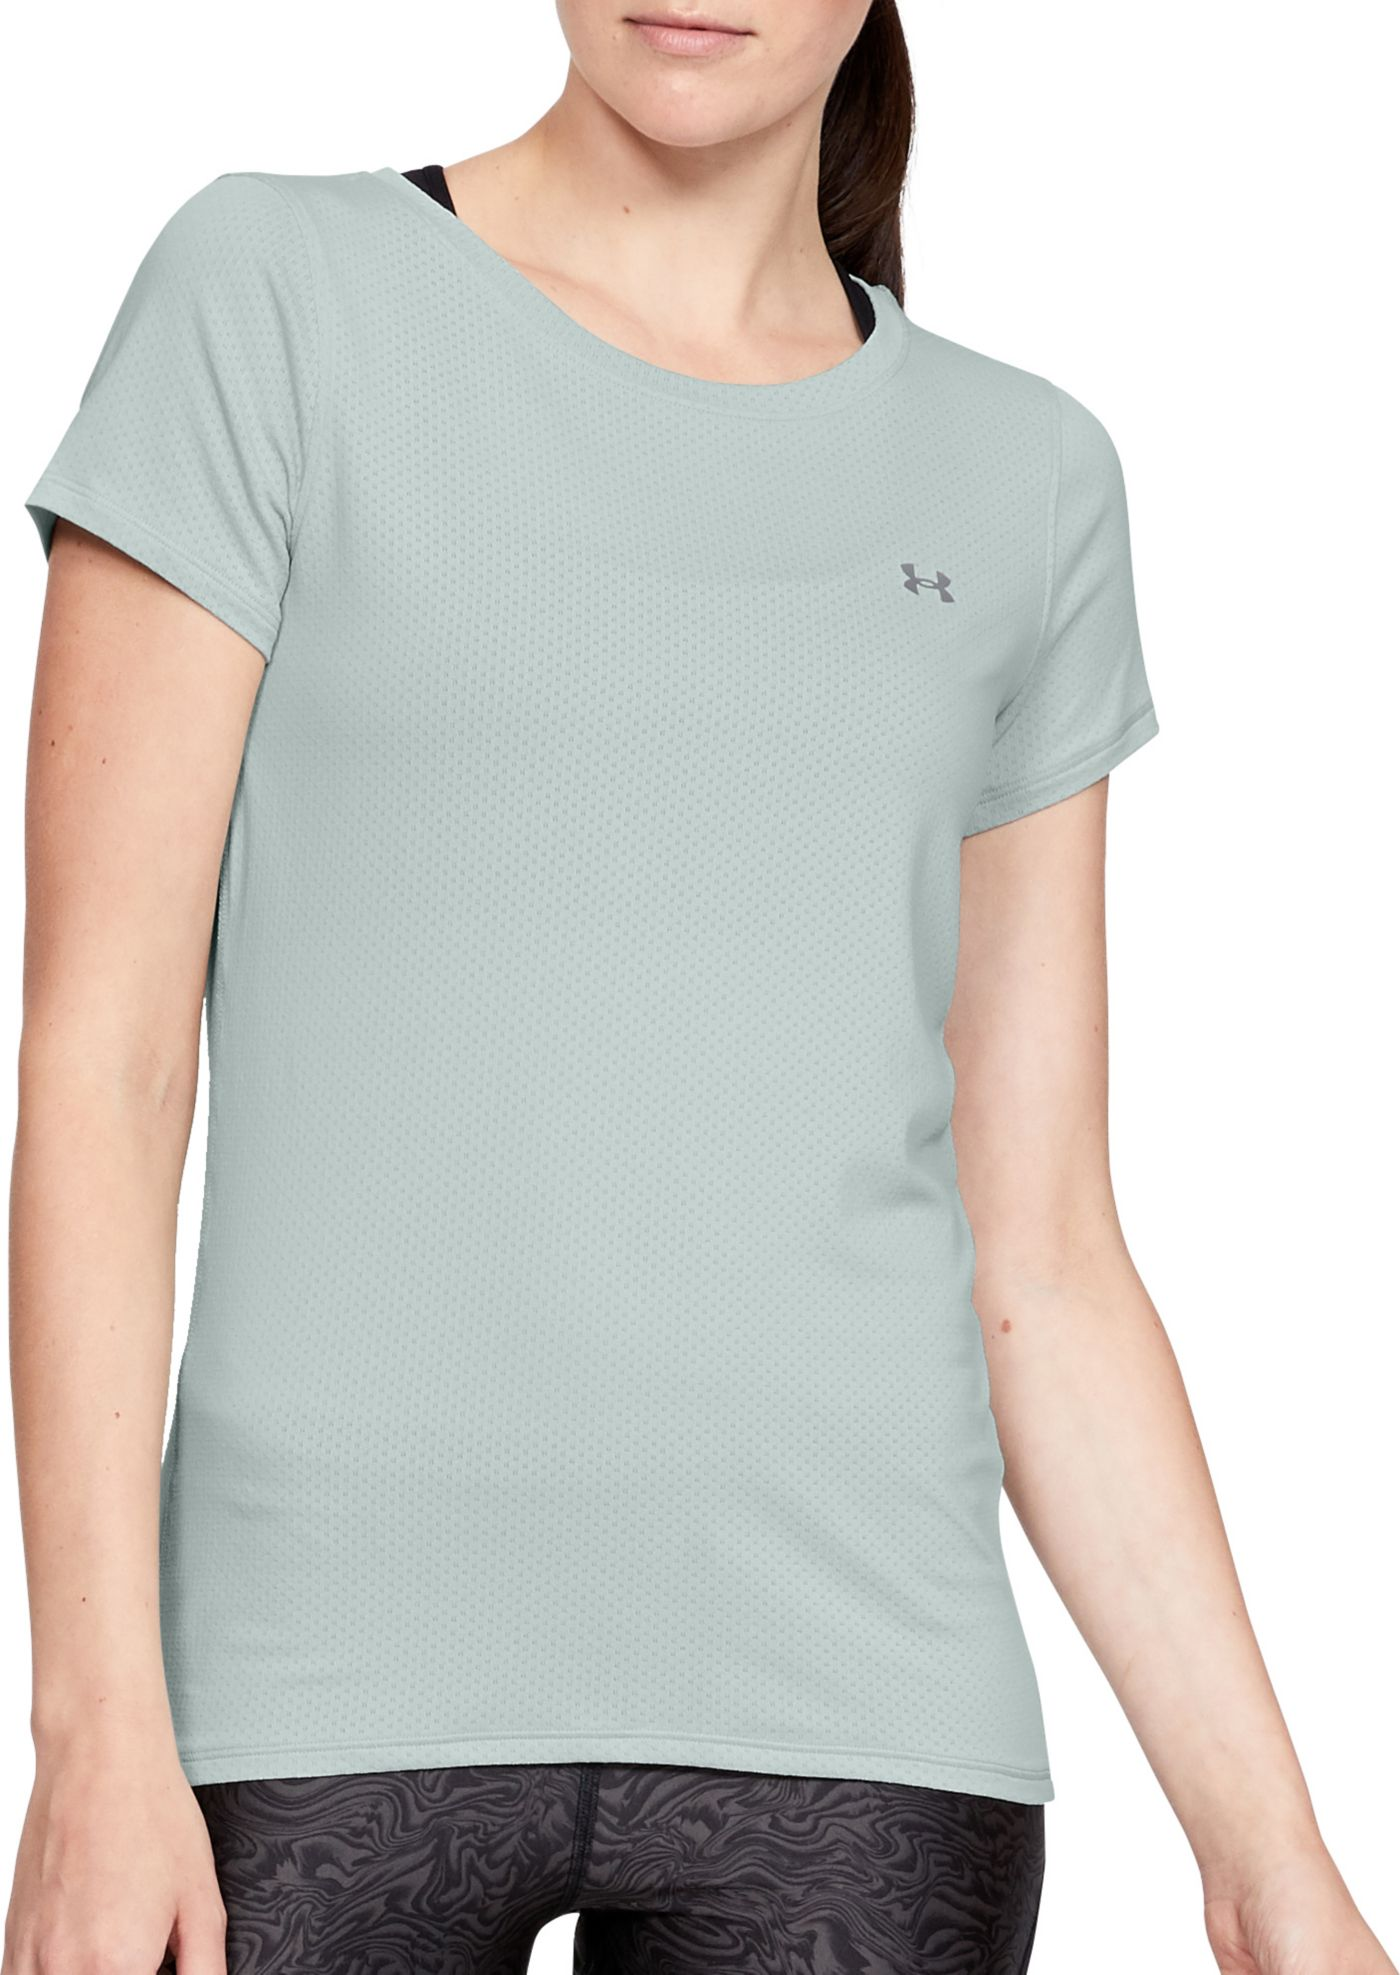 Under Armour Women's HeatGear Armour T-Shirt